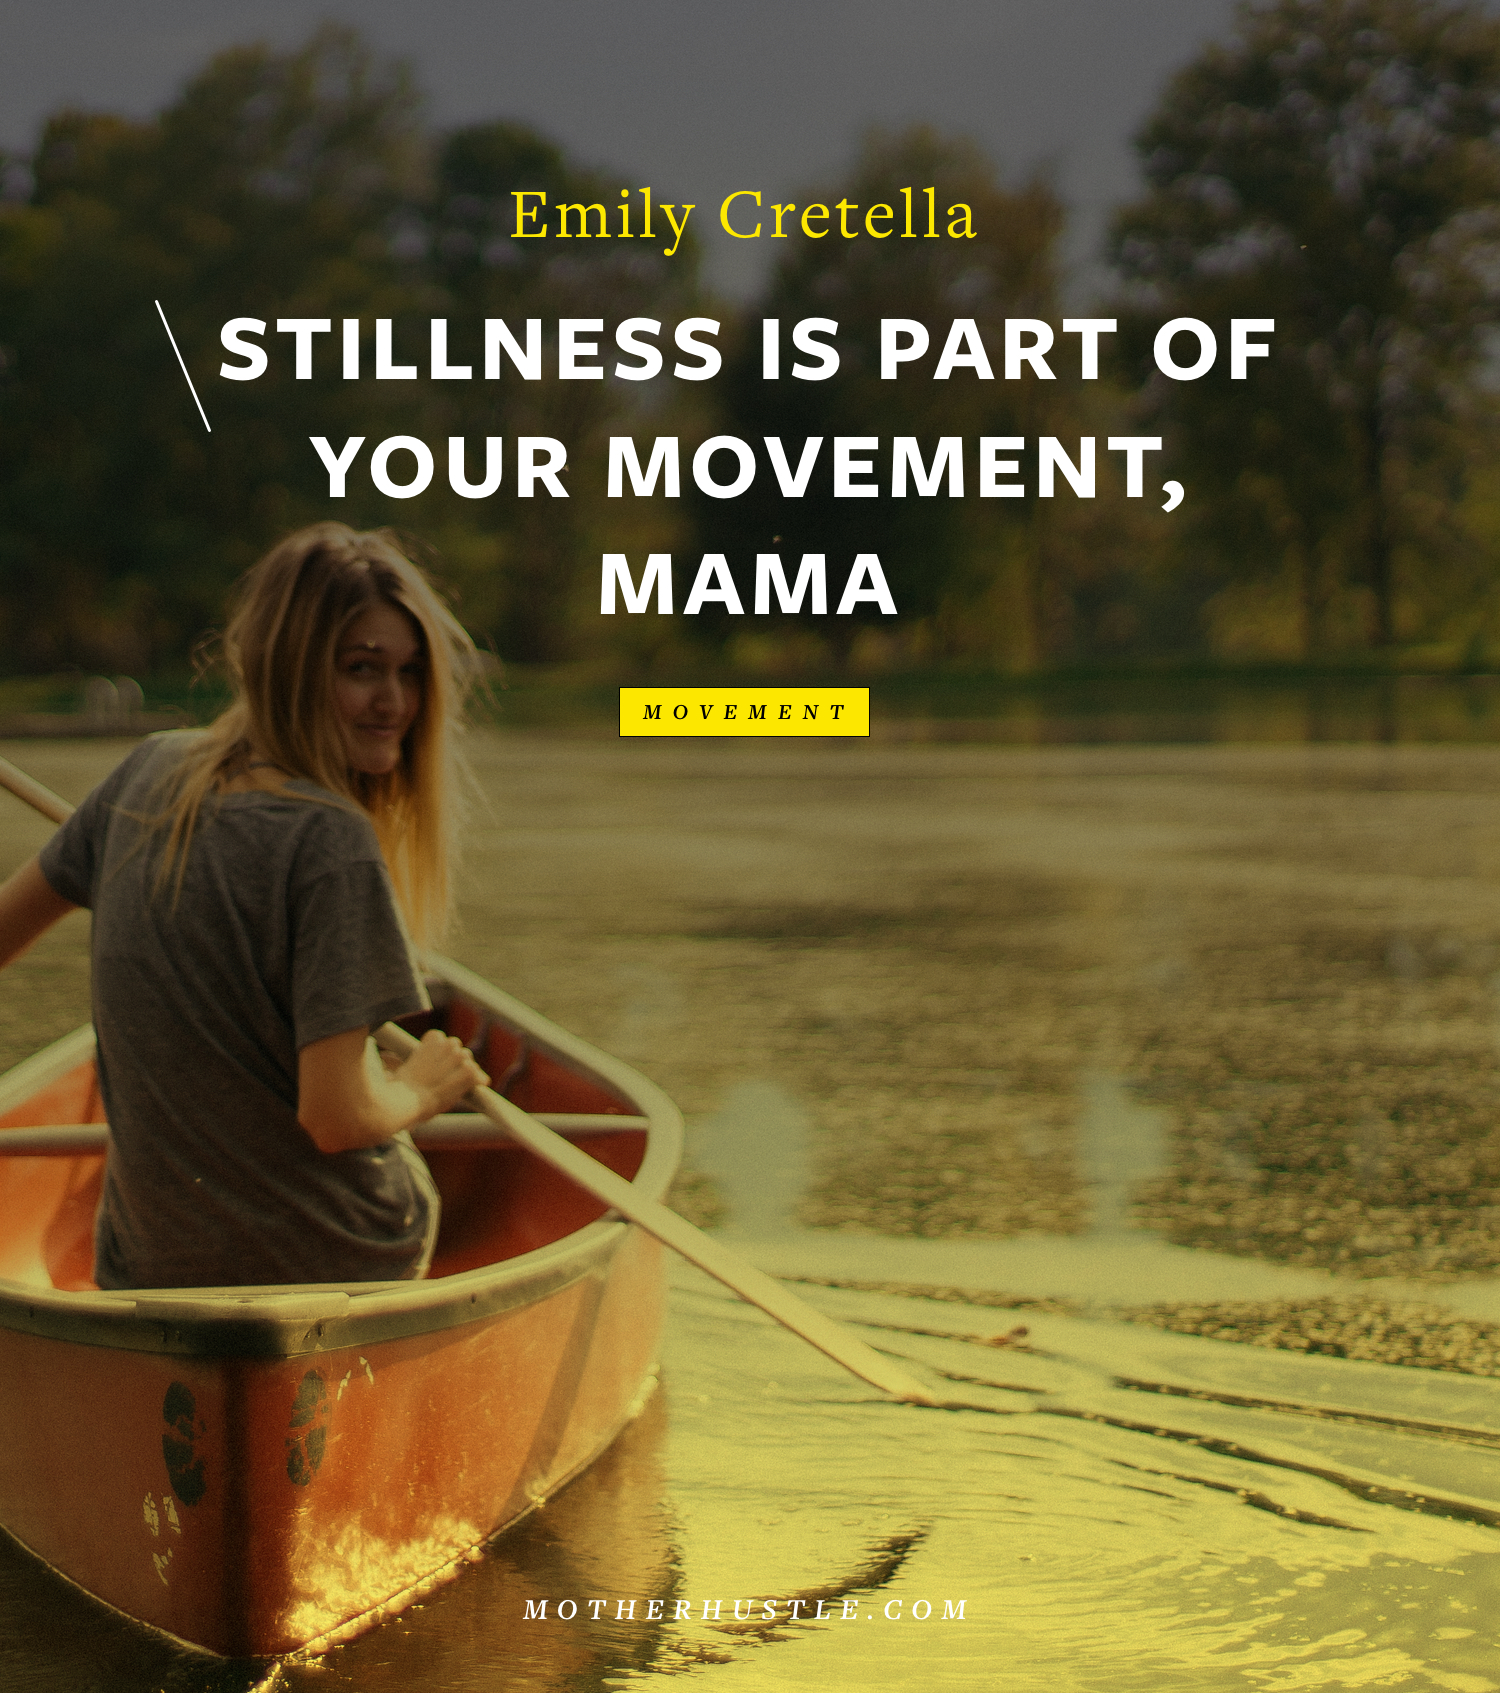 Stillness is Part of Your Movement, Mama - by Emily Cretella of MotherHustle